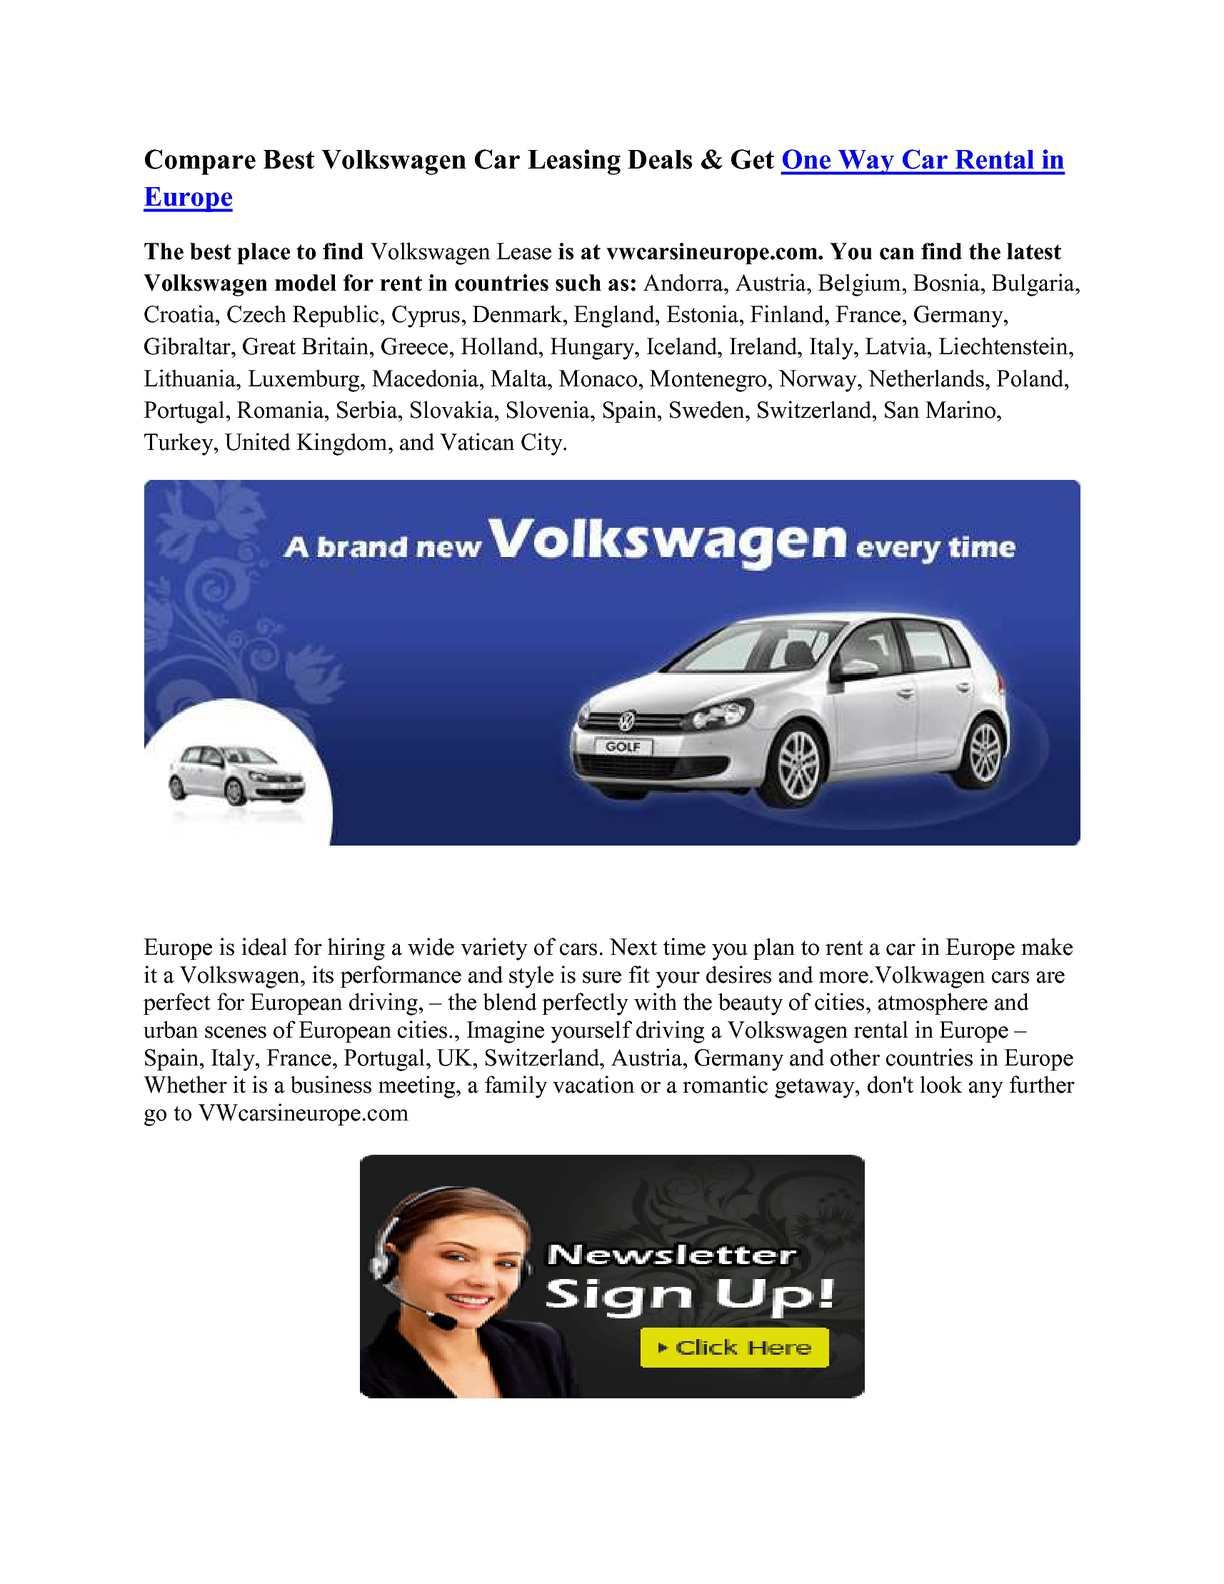 88a80e0af4 Calaméo - Compare Best Volkswagen Car Leasing Deals   Get One Way Car Rental  in Europe